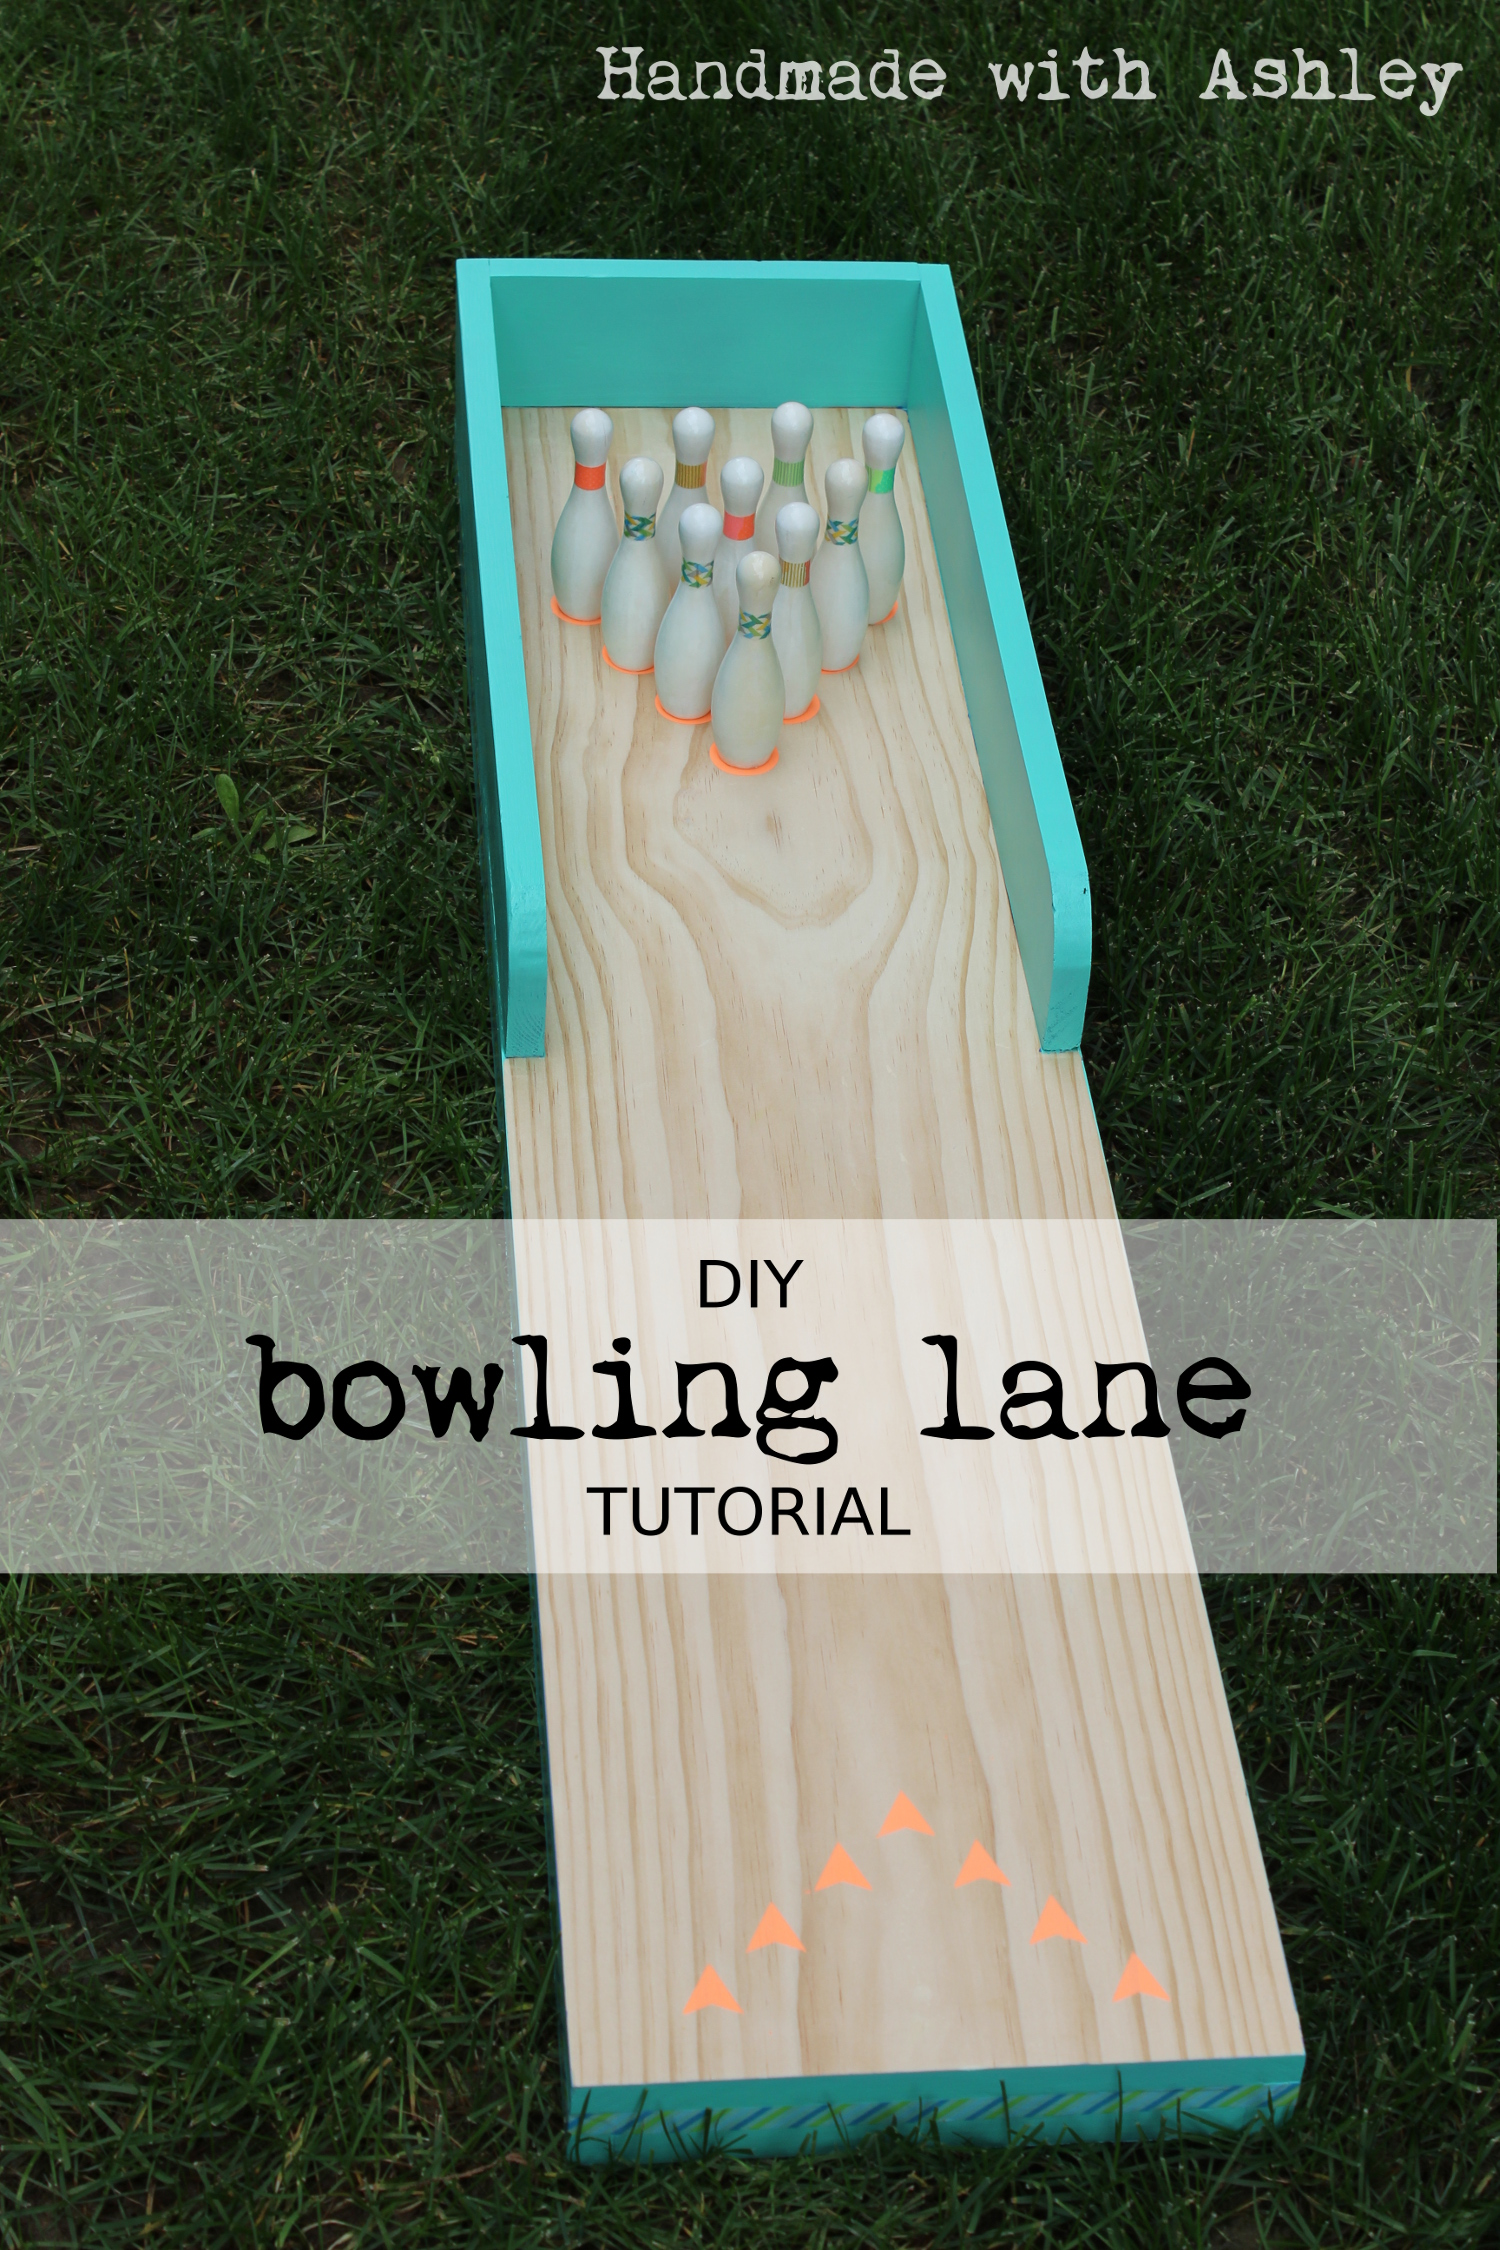 diy bowling lane tutorial handmade with ashley